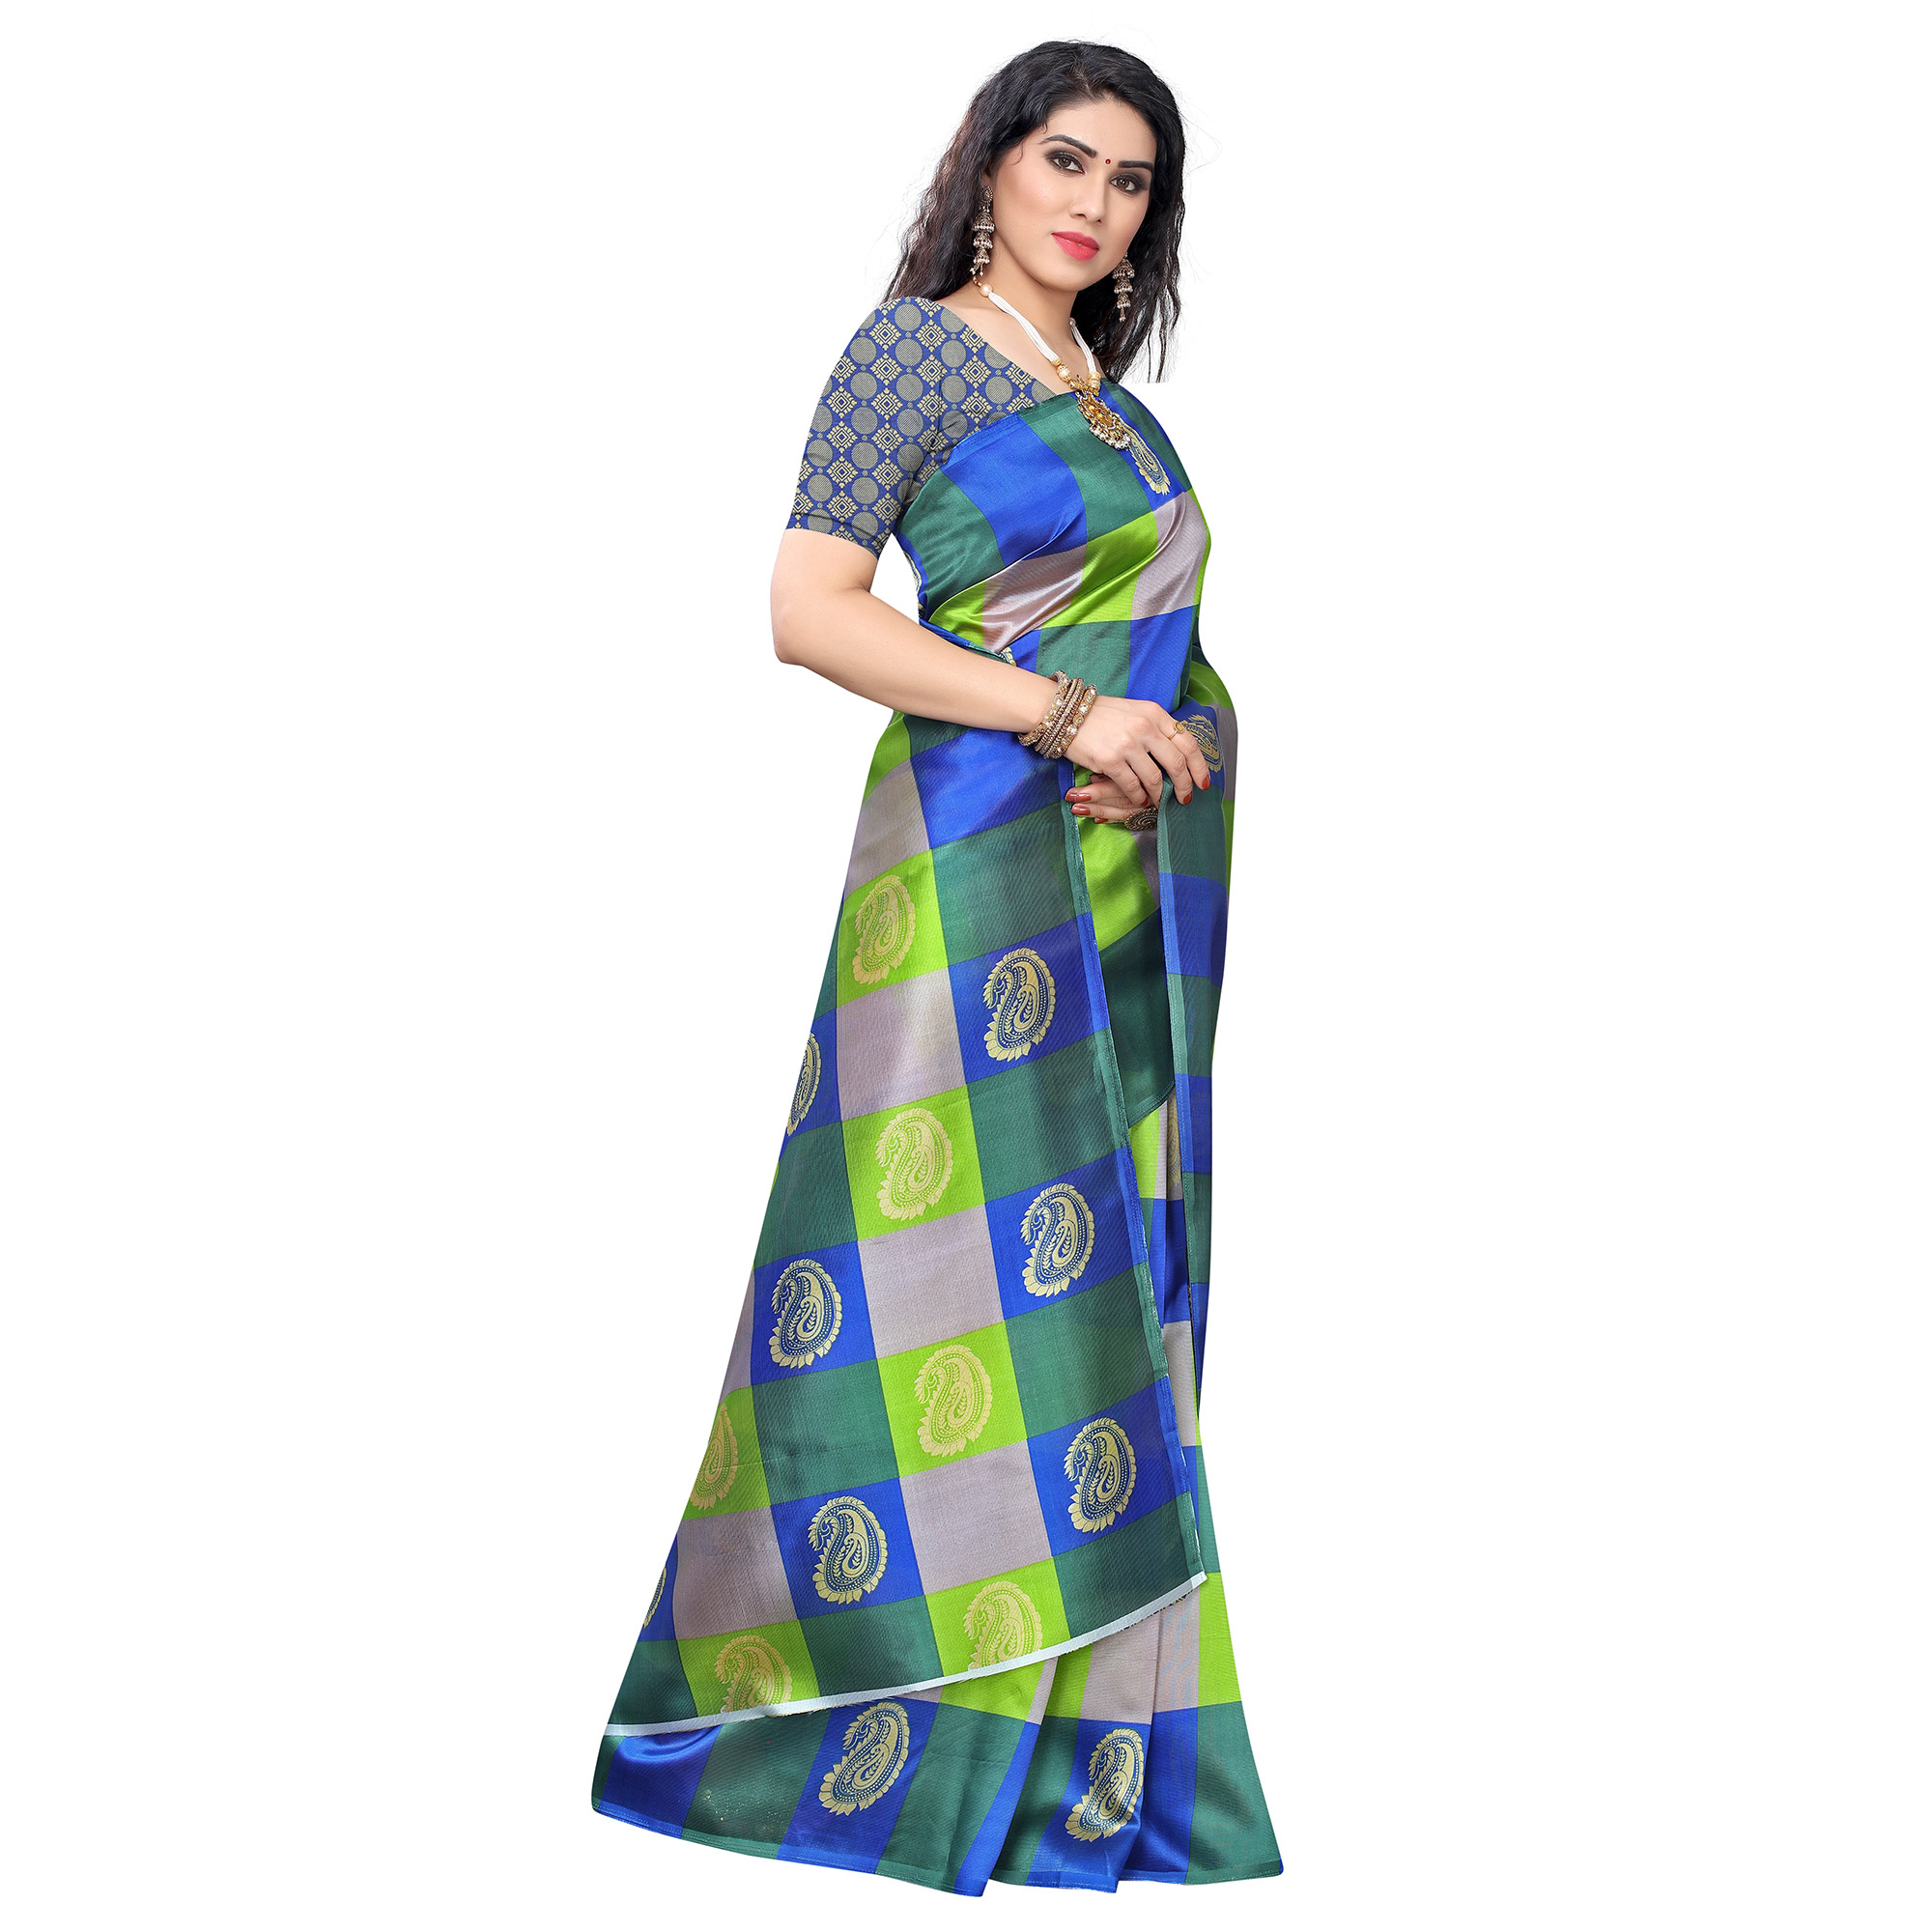 Engrossing Green Colored Casual Wear Printed Art Silk Saree